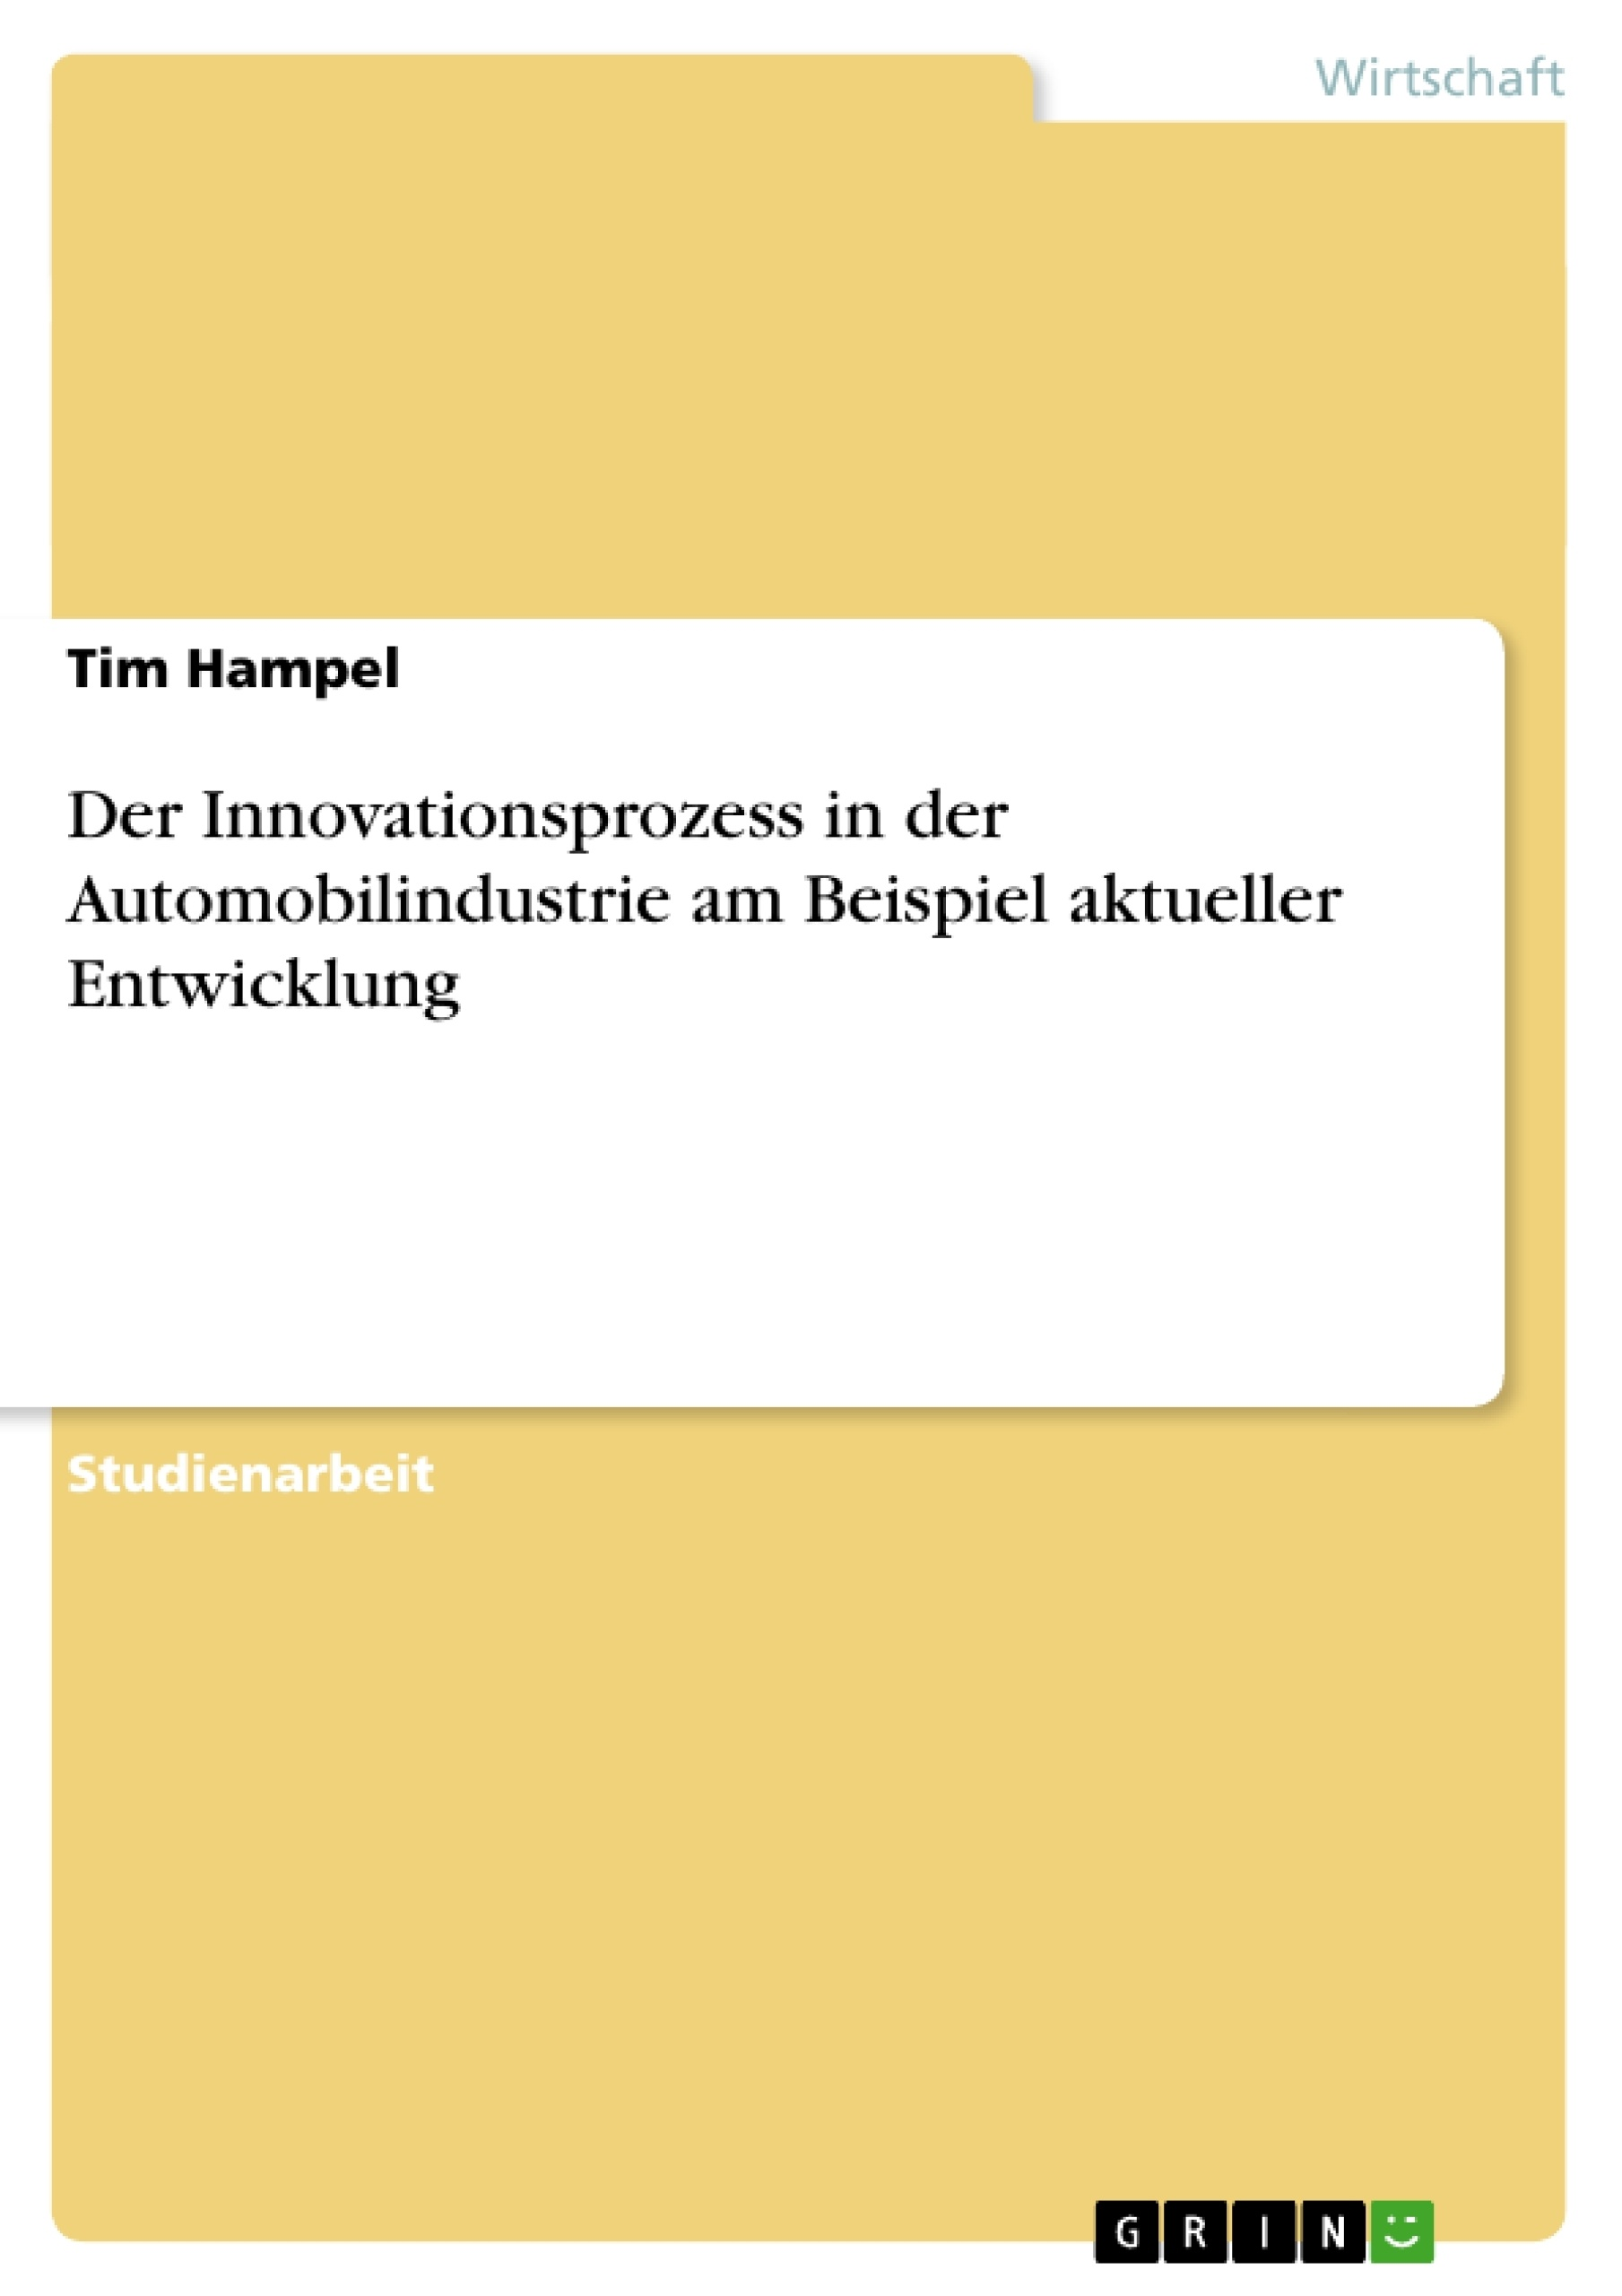 download Management von Controllingwissen: Ein sach